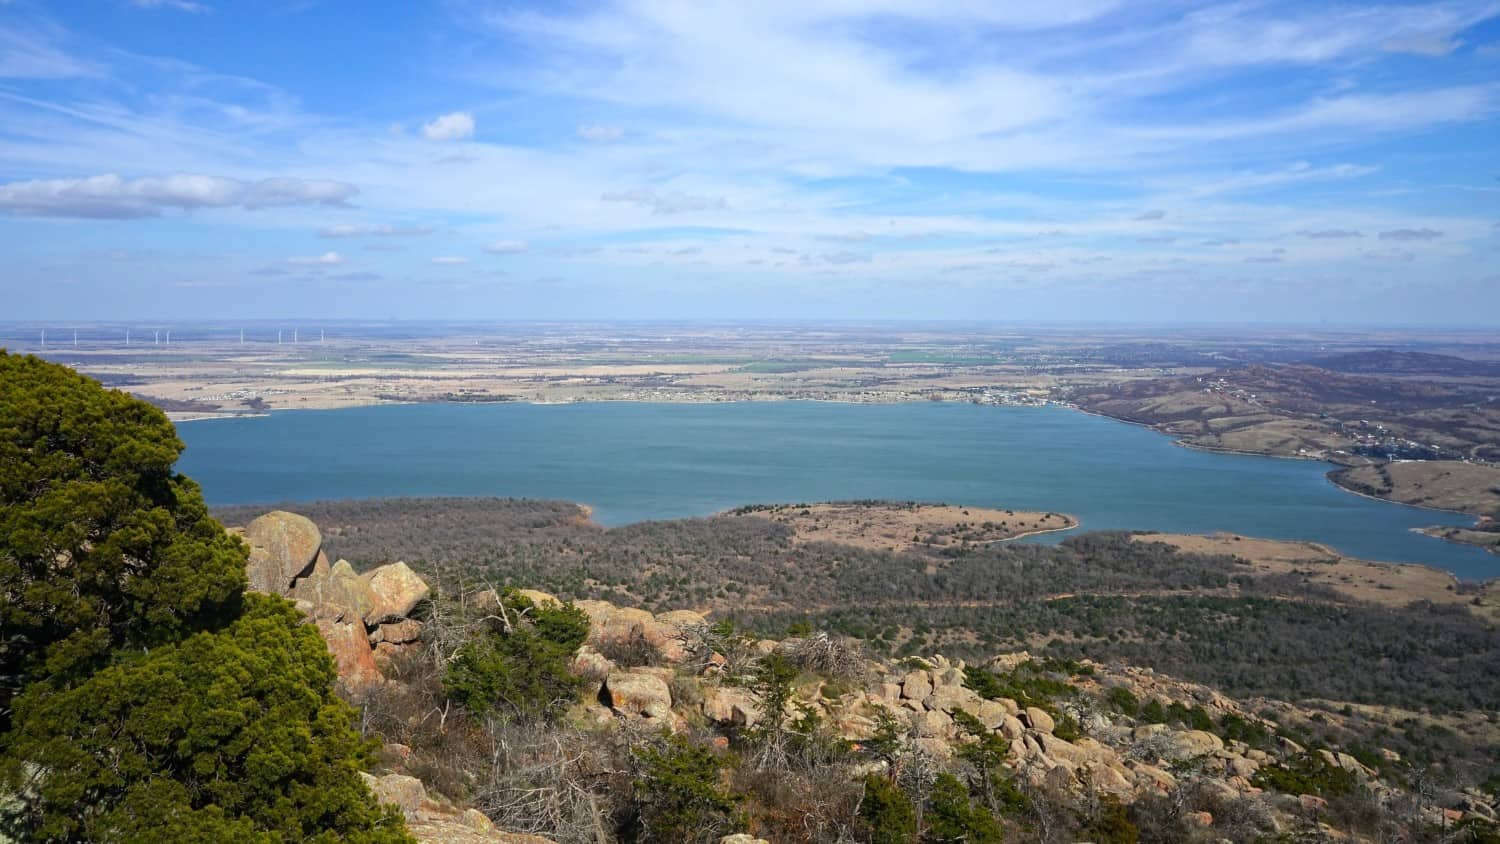 Oklahoma's Top Pet Friendly Attraction: Wichita Mountains Wildlife Refuge | GoPetFriendly.com